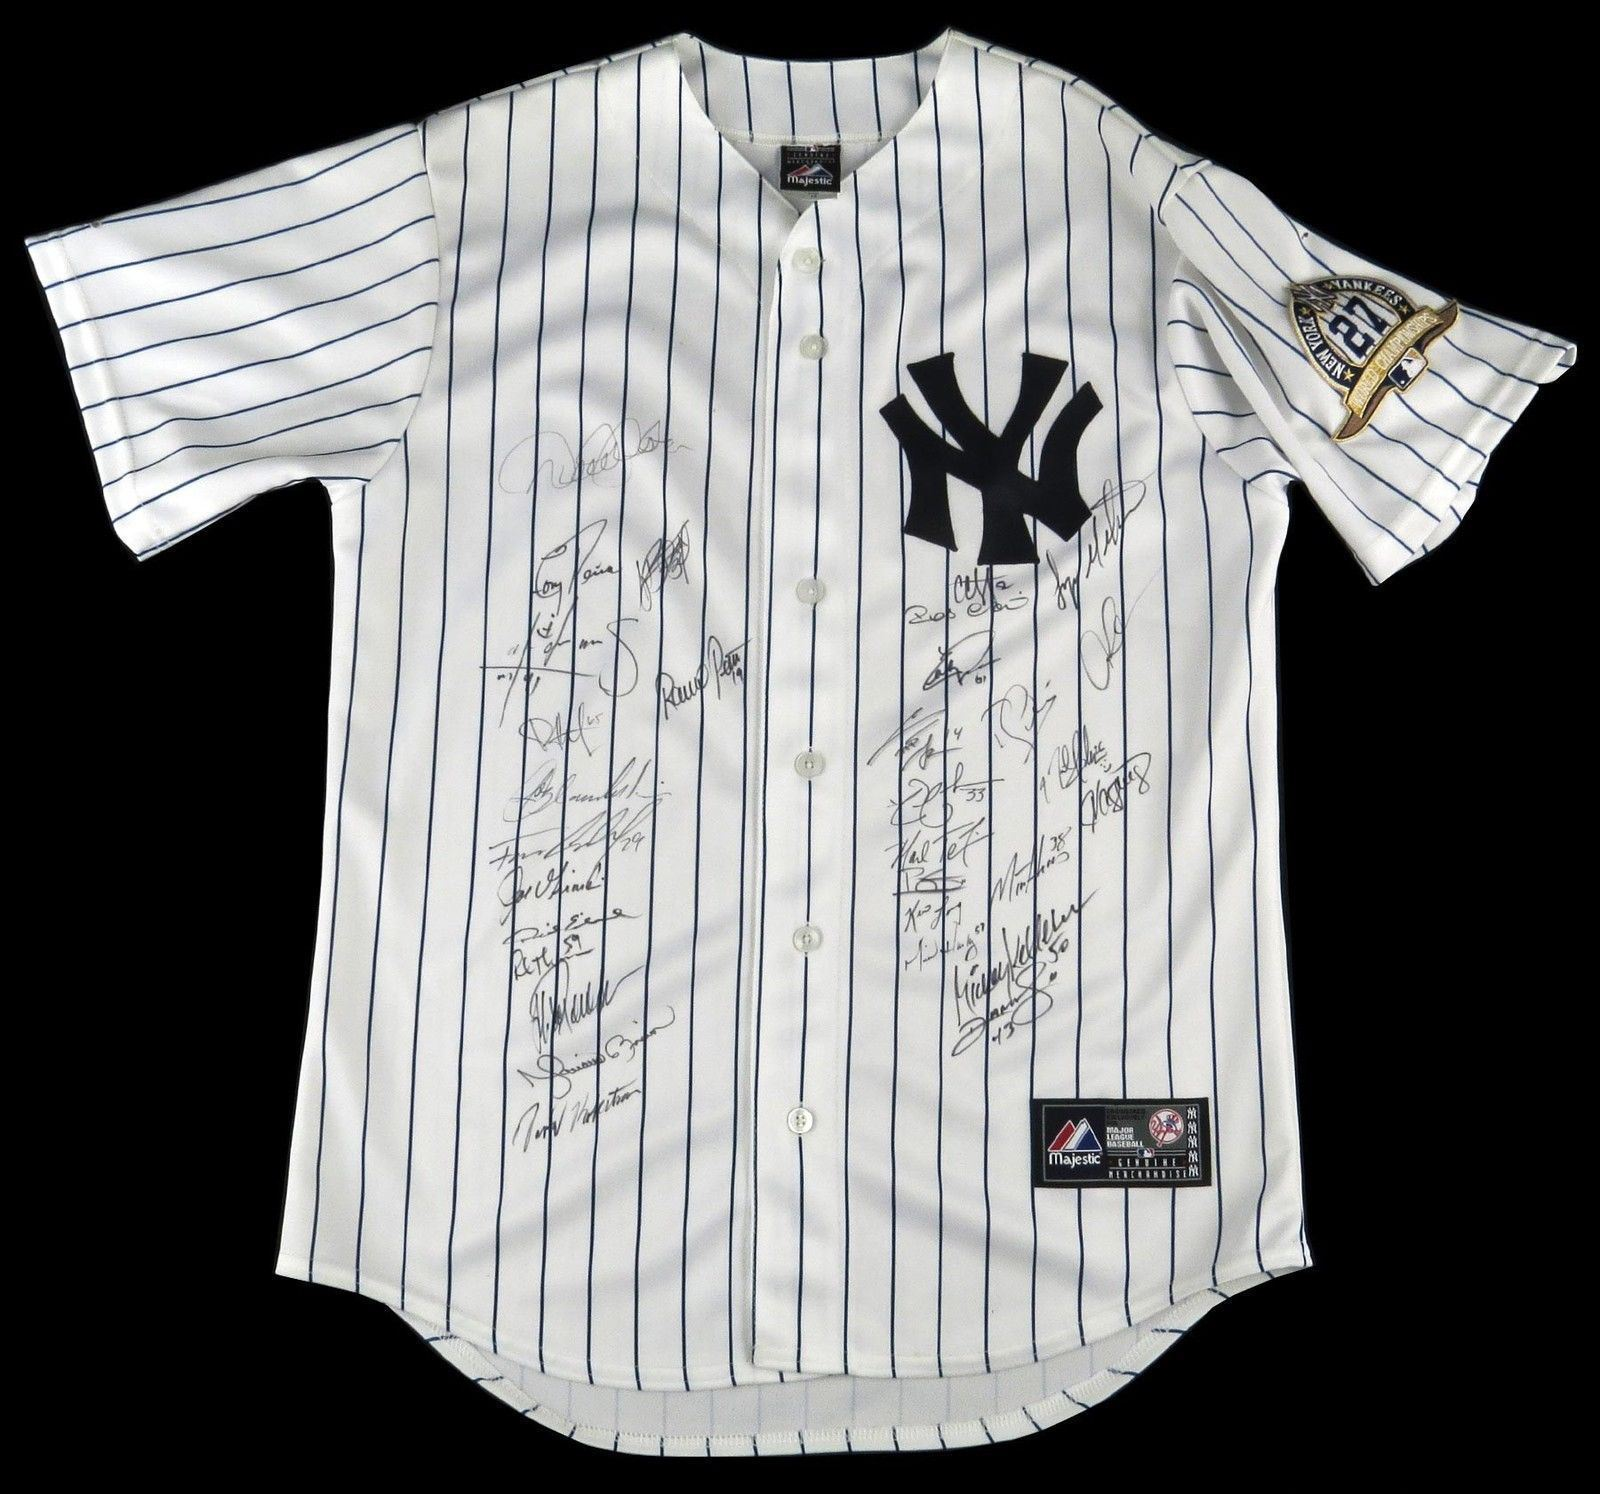 8bb8c113142 2009 NY Yankees World Series Champs Team Signed Jersey Derek Jeter Rivera  JSA